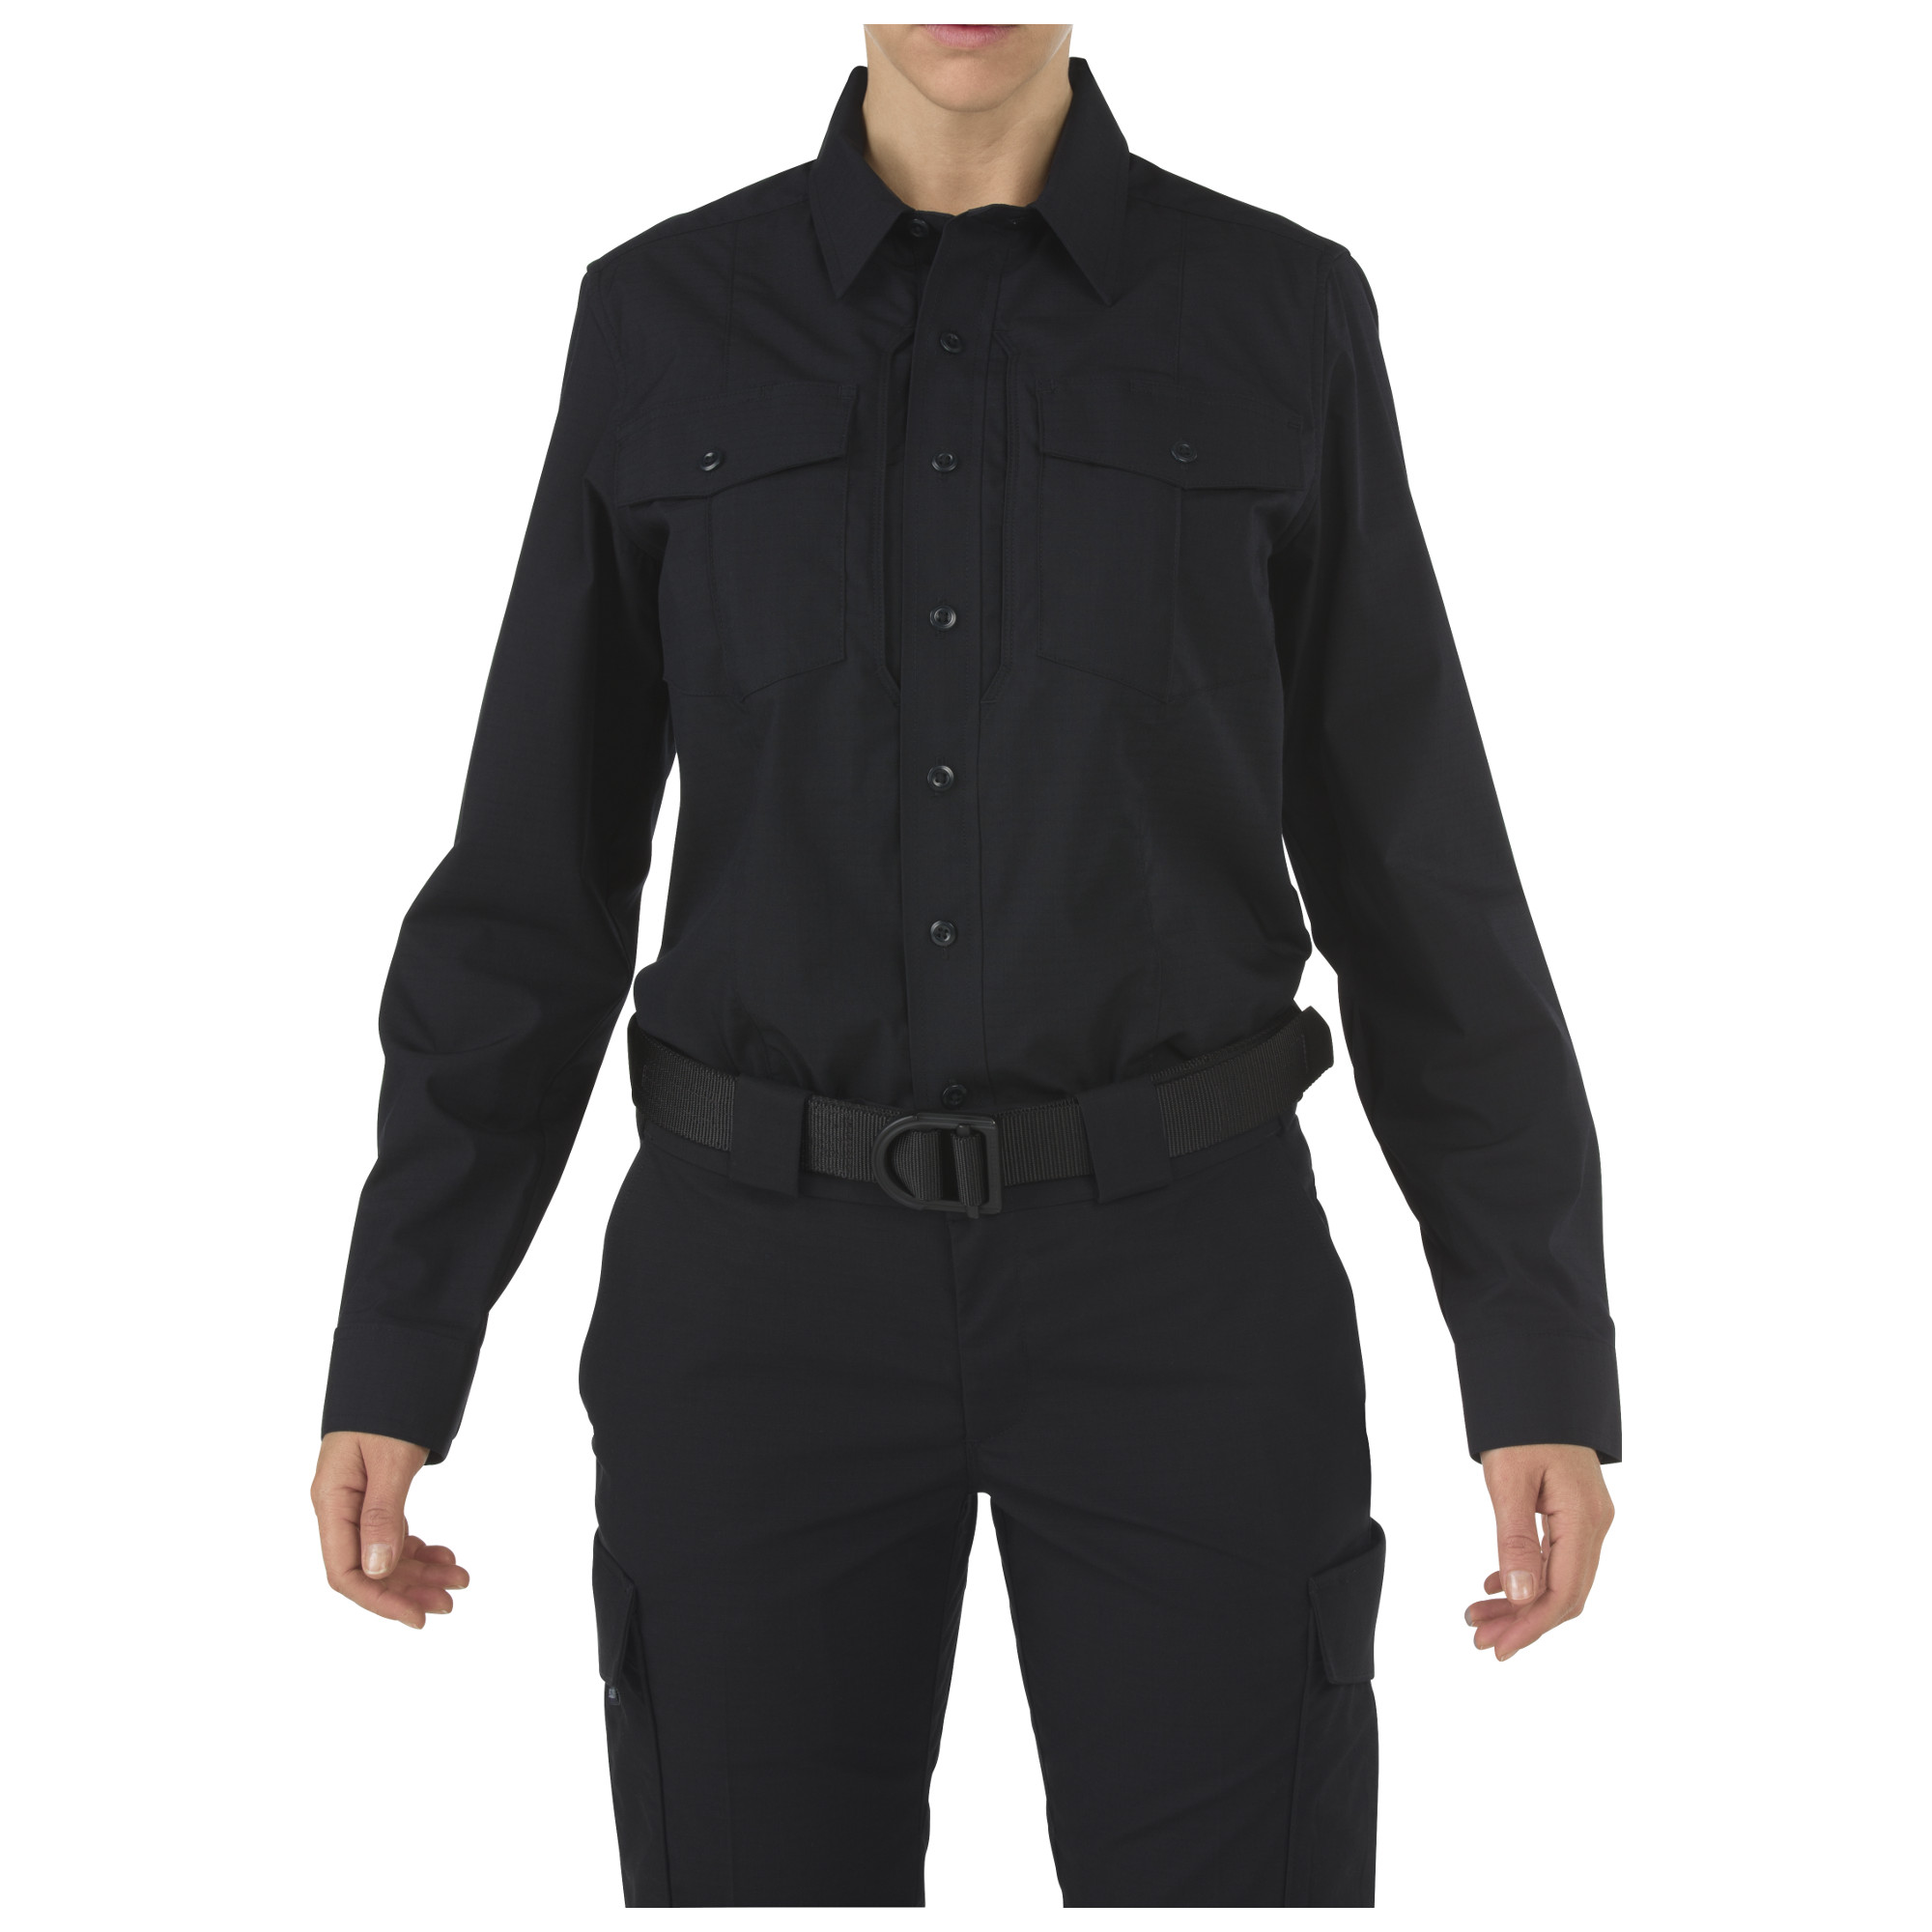 5.11 Tactical Womens 5.11 Stryke™ Class-B Pdu® Long Sleeve Shirt-511